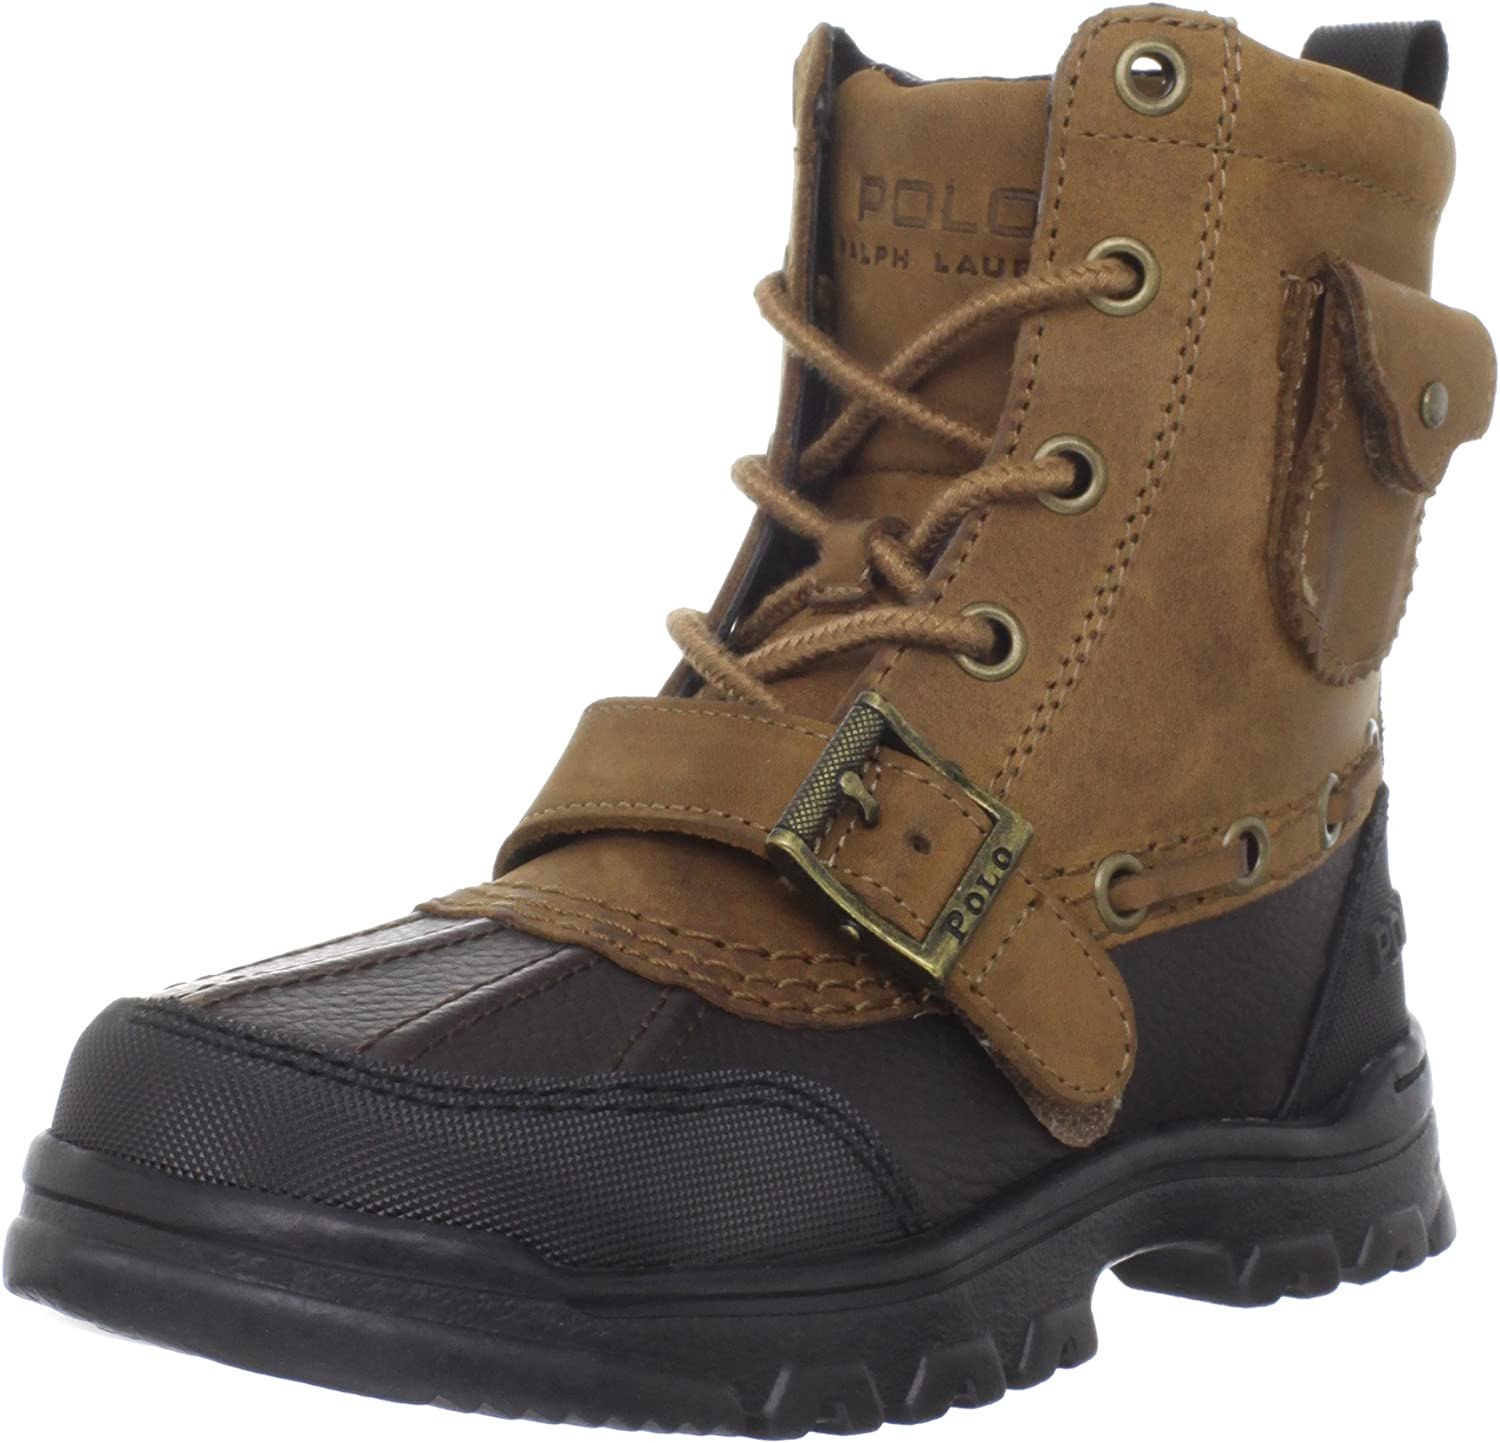 Polo by Ralph Lauren Hamlin All Max 64% OFF items free shipping Little Kid Boot Big Toddler